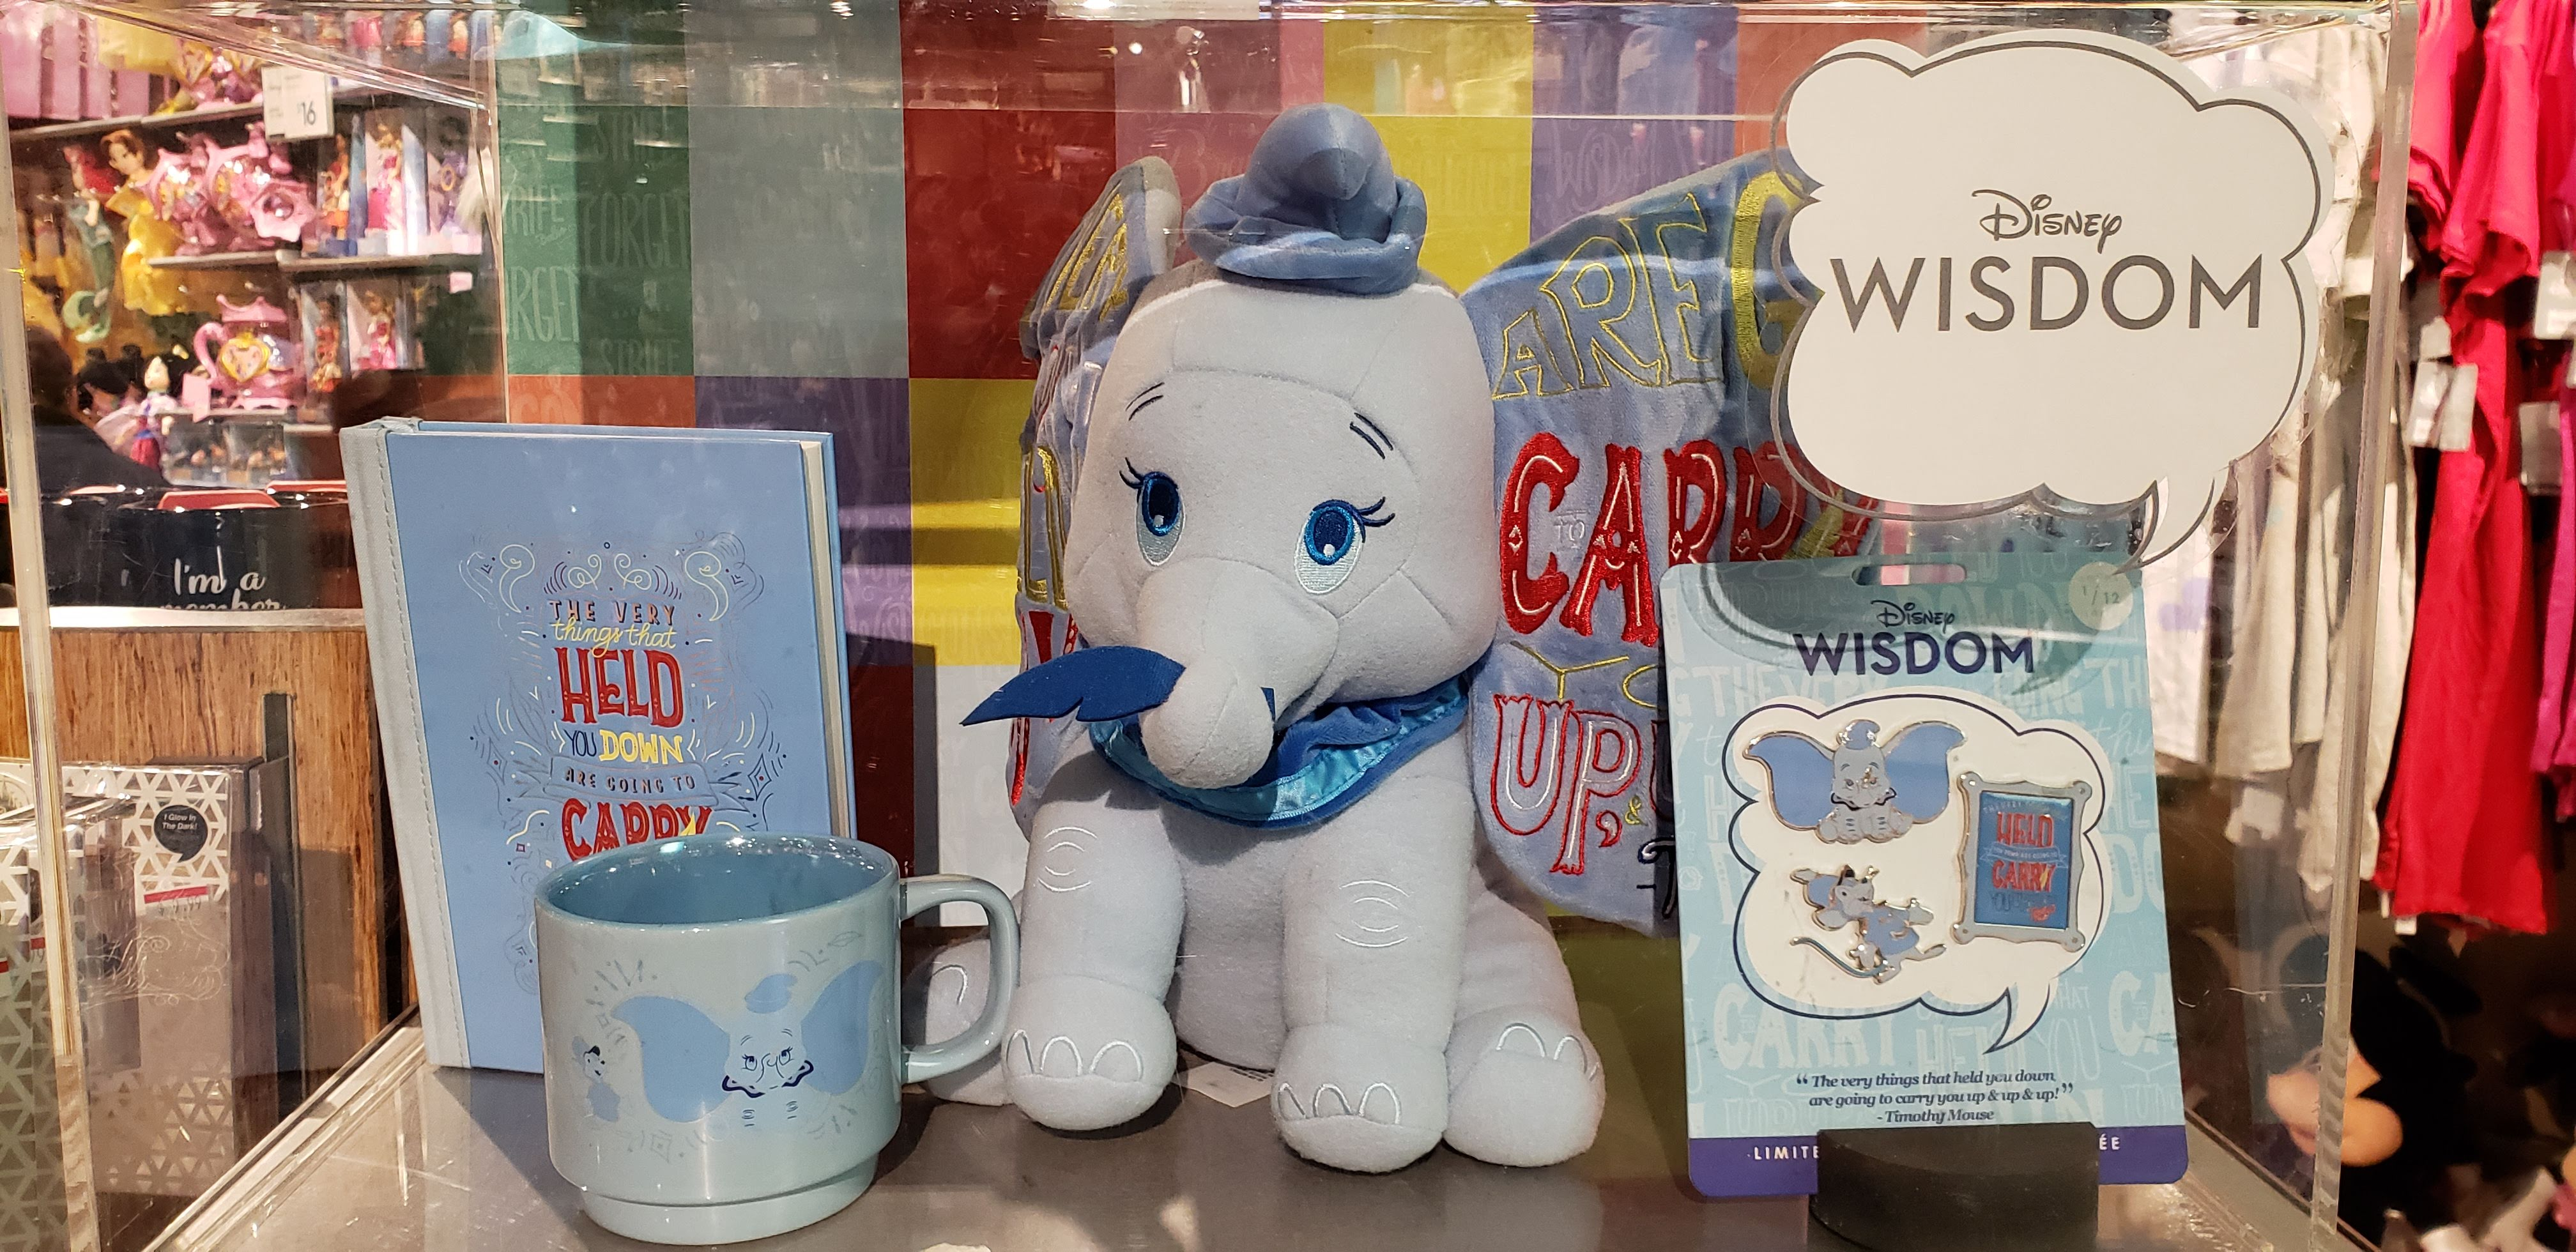 New Shopdisney 2019 Collectible Series Is Titled Wisdom And We Love It